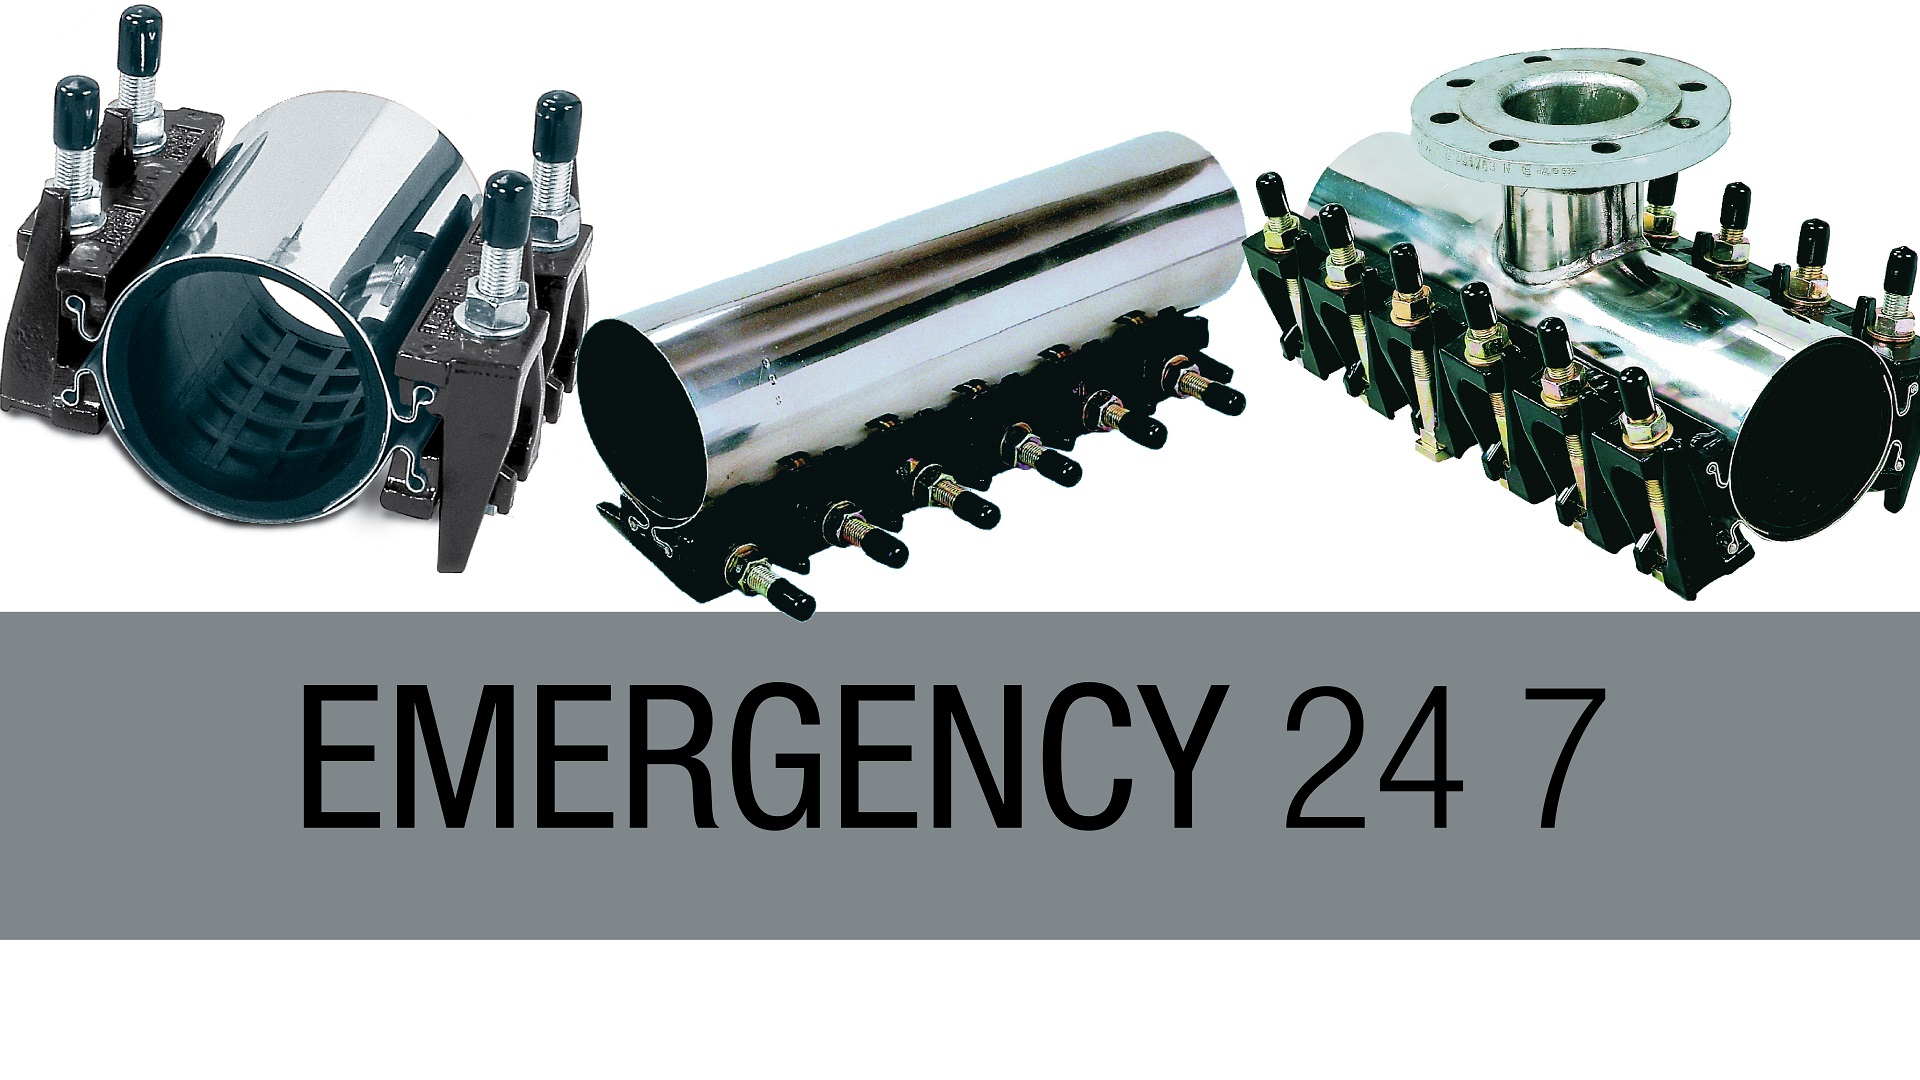 AVK 24 7 Emergency repair service